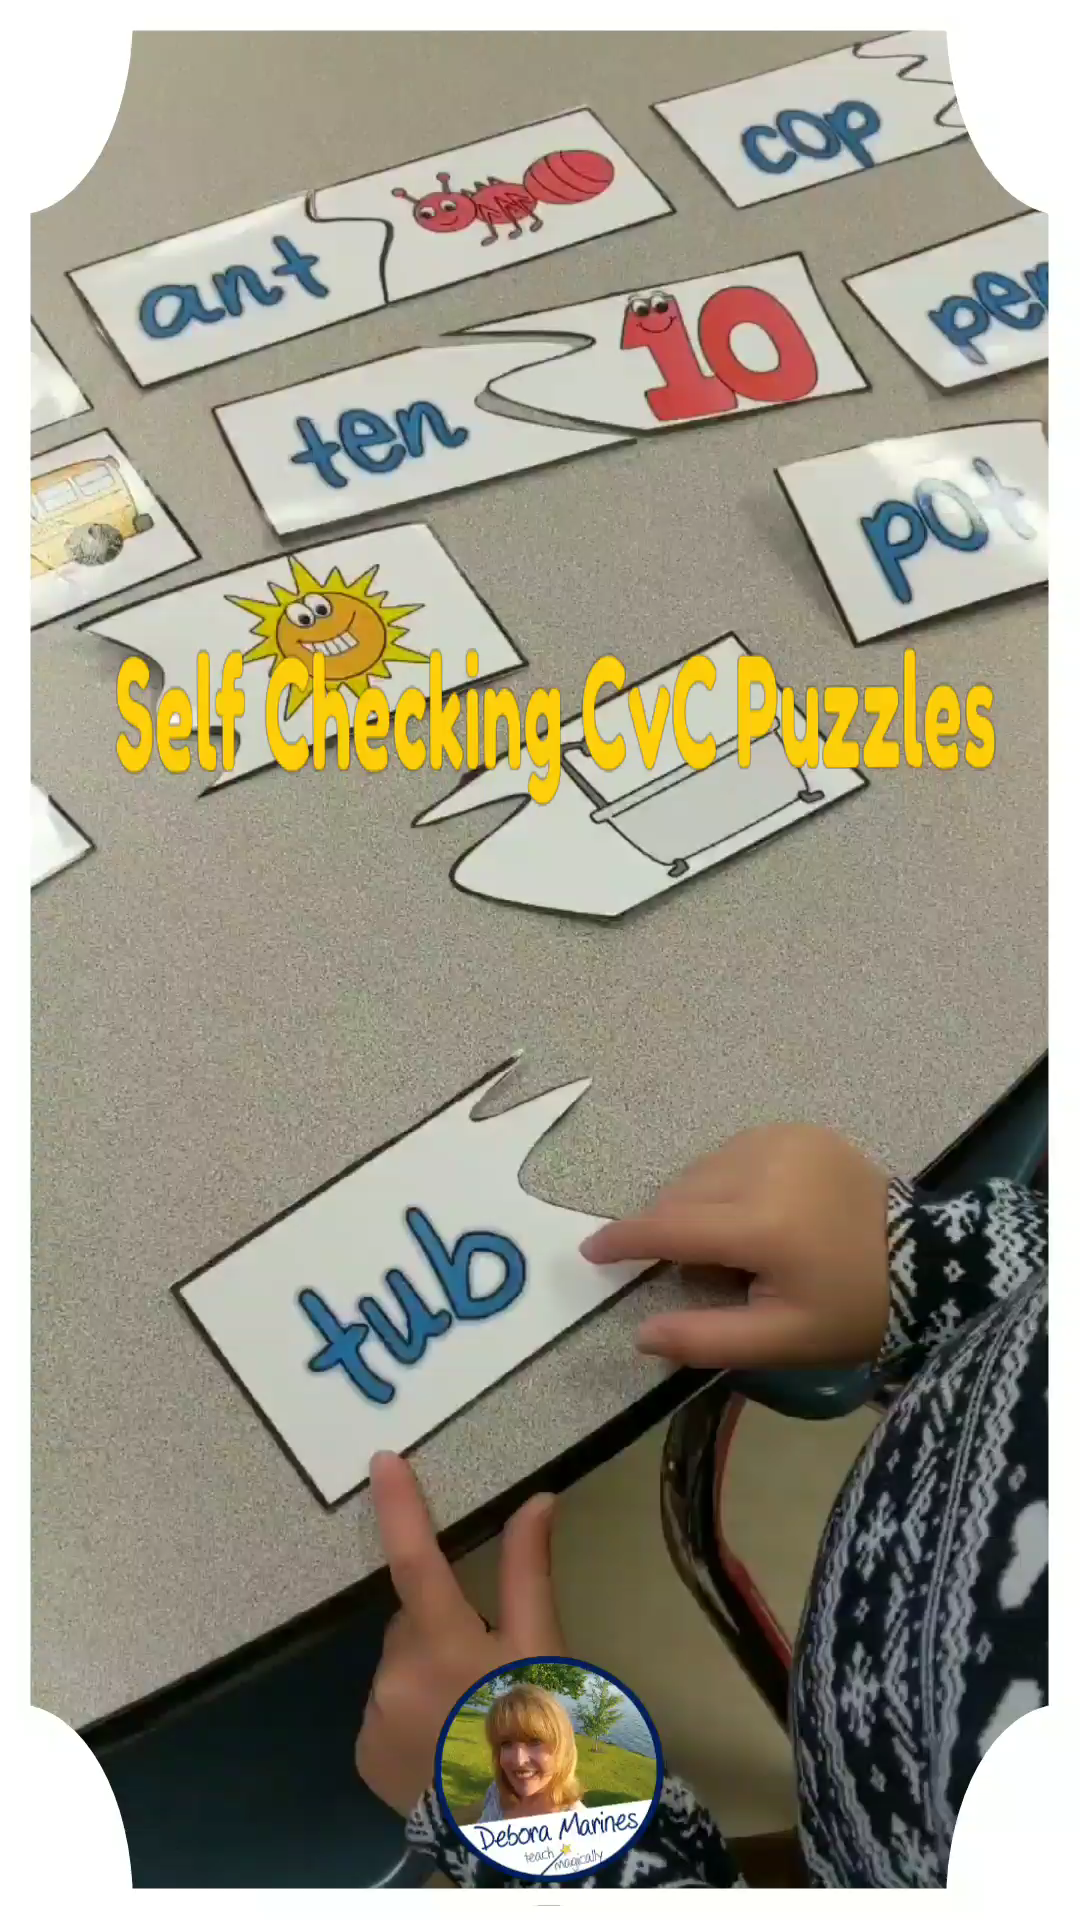 Blending Cvc Words Phonemic Awareness Puzzles